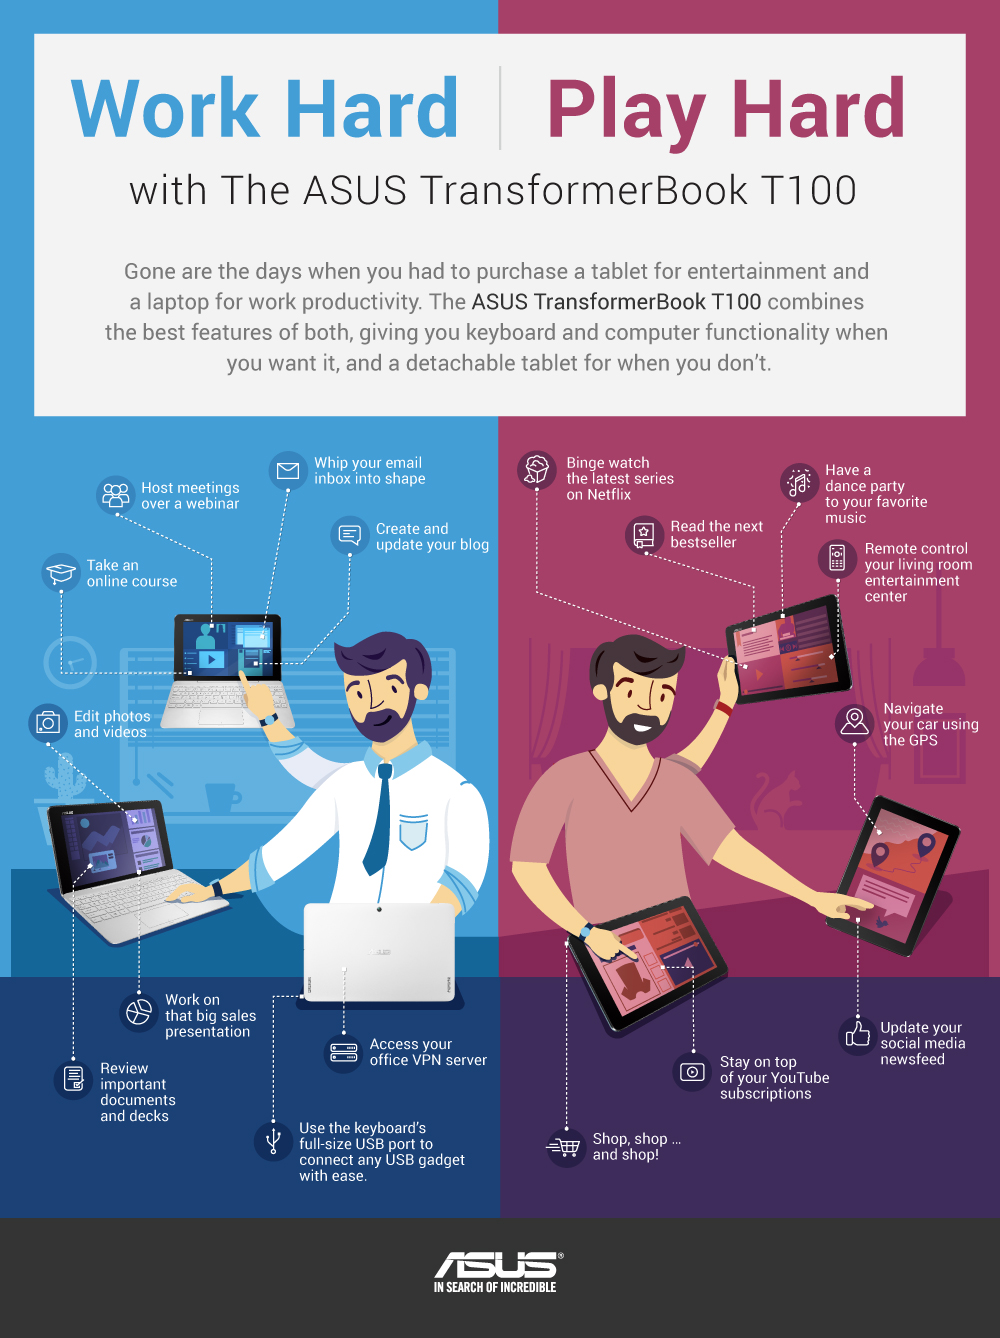 ASUS: Work Hard, Play Hard infographic